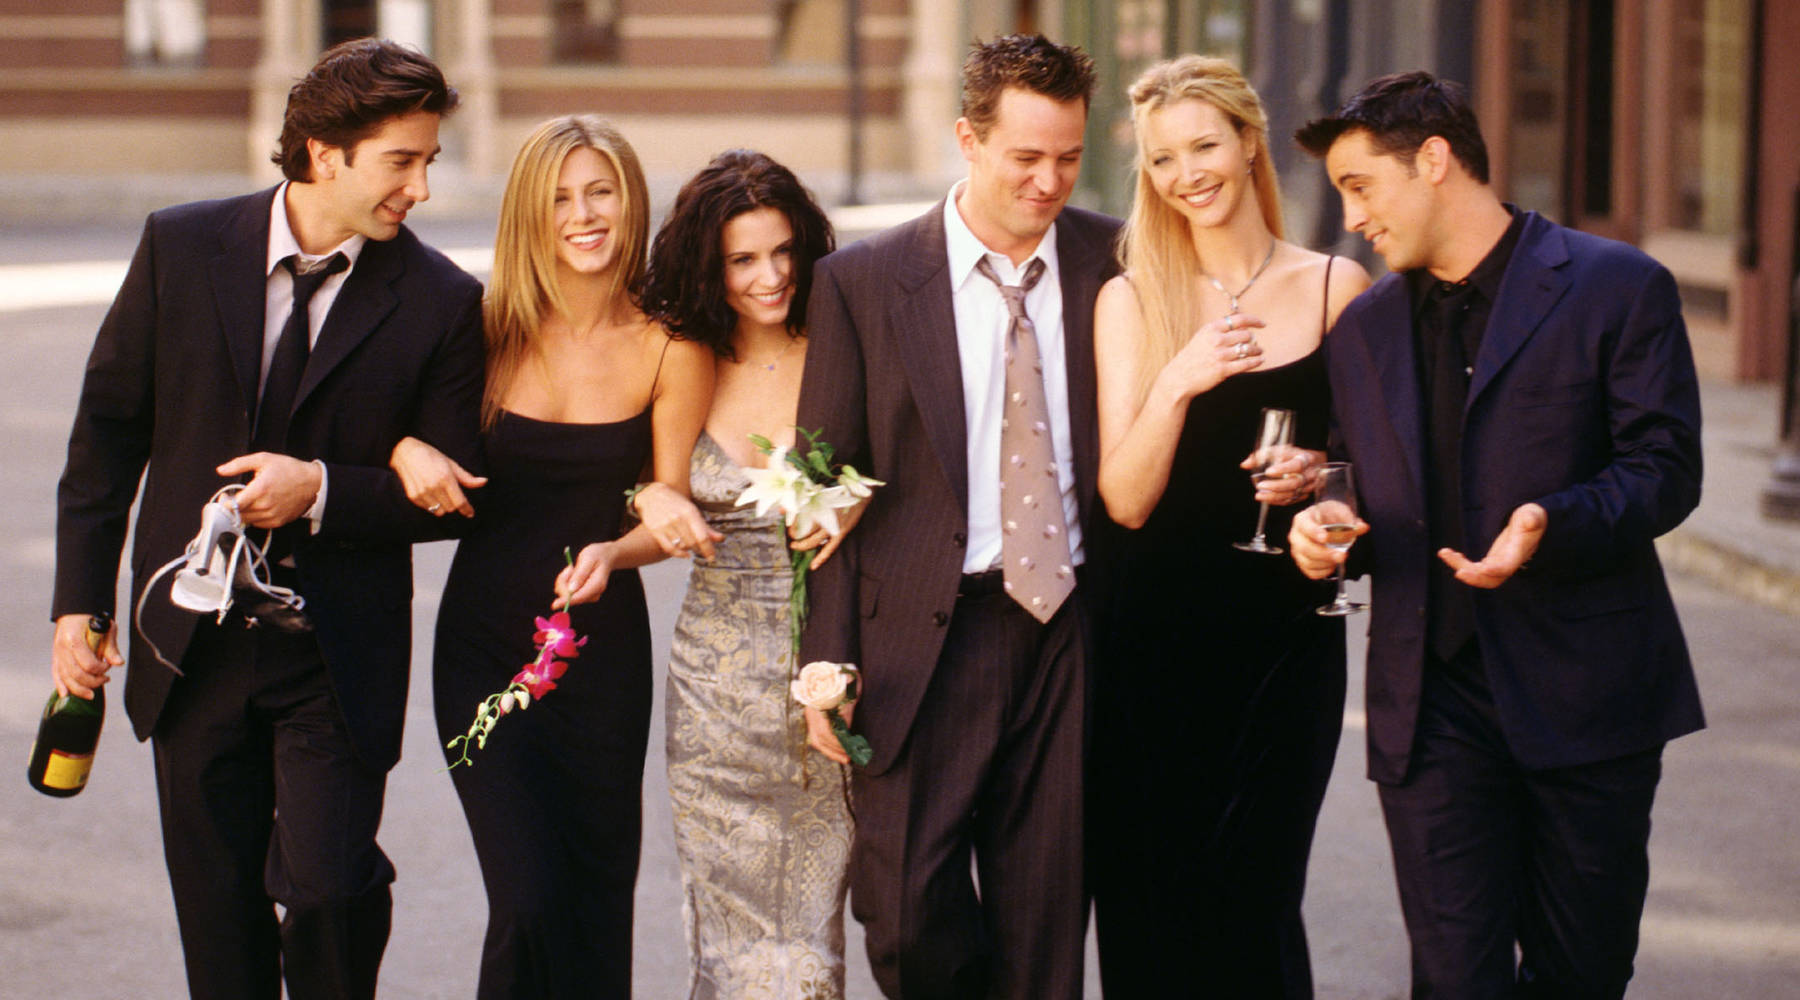 """Friends"""" moves from Netflix to HBO Max streaming service - Marketplace"""